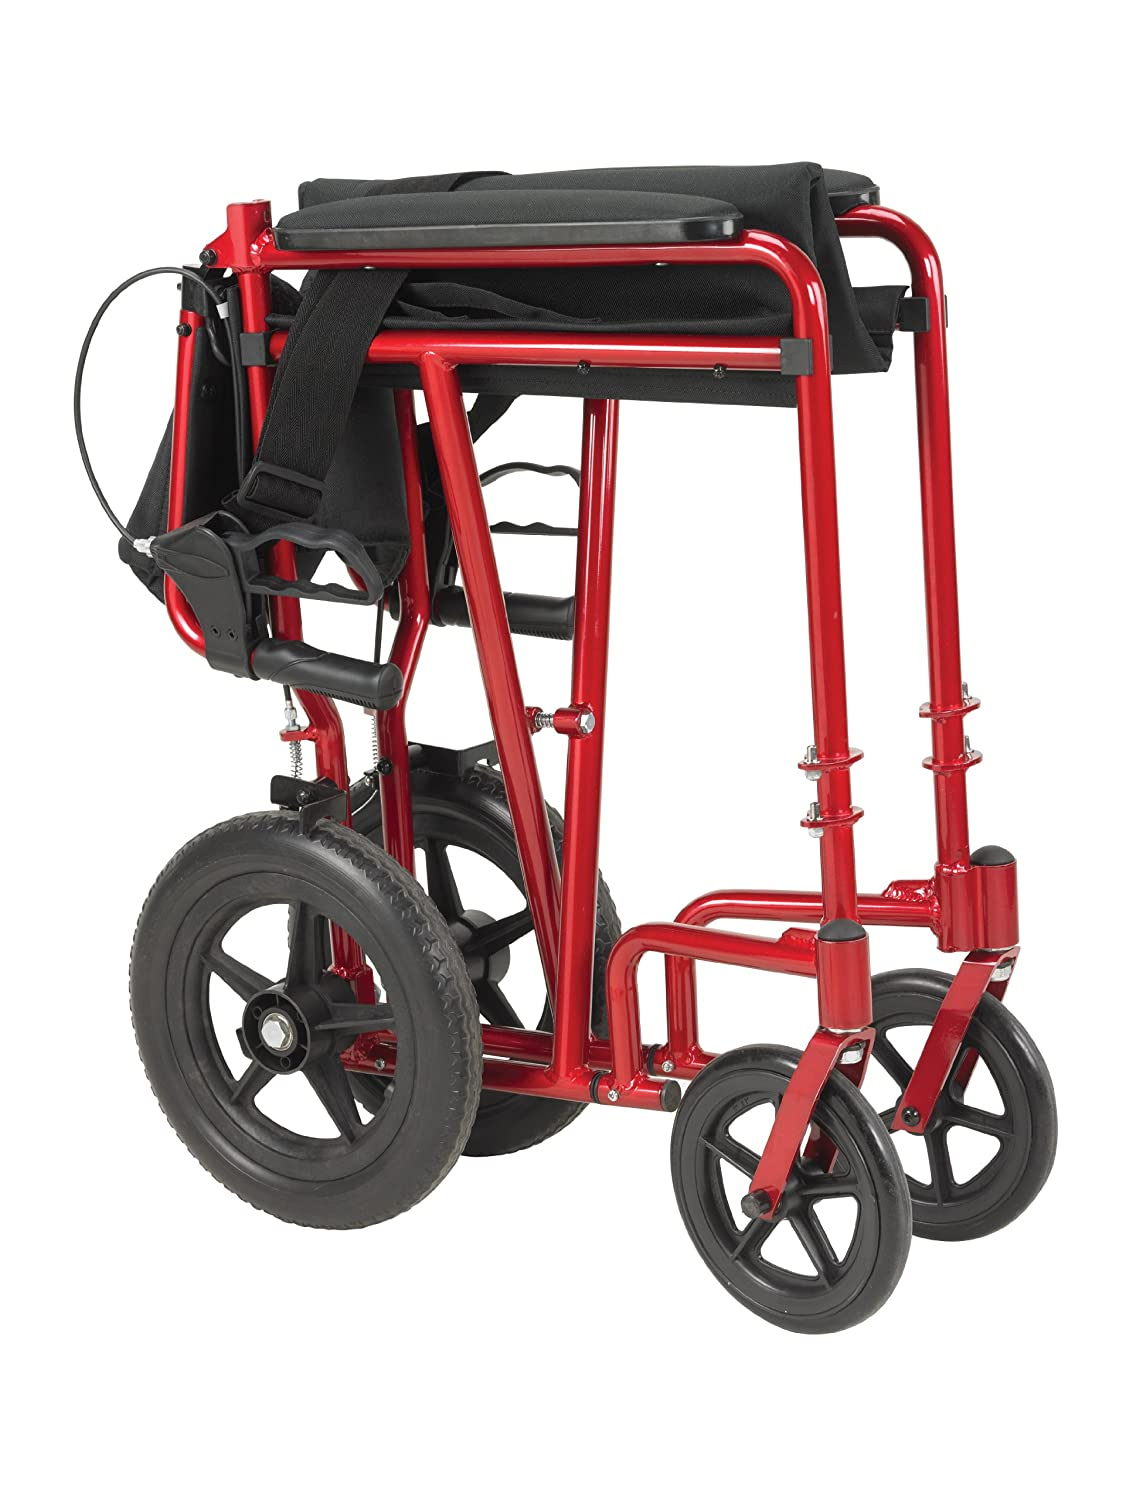 Transport chair amazon - Amazon Com Drive Medical Lightweight Expedition Transport Wheelchair With Hand Brakes Blue Health Personal Care